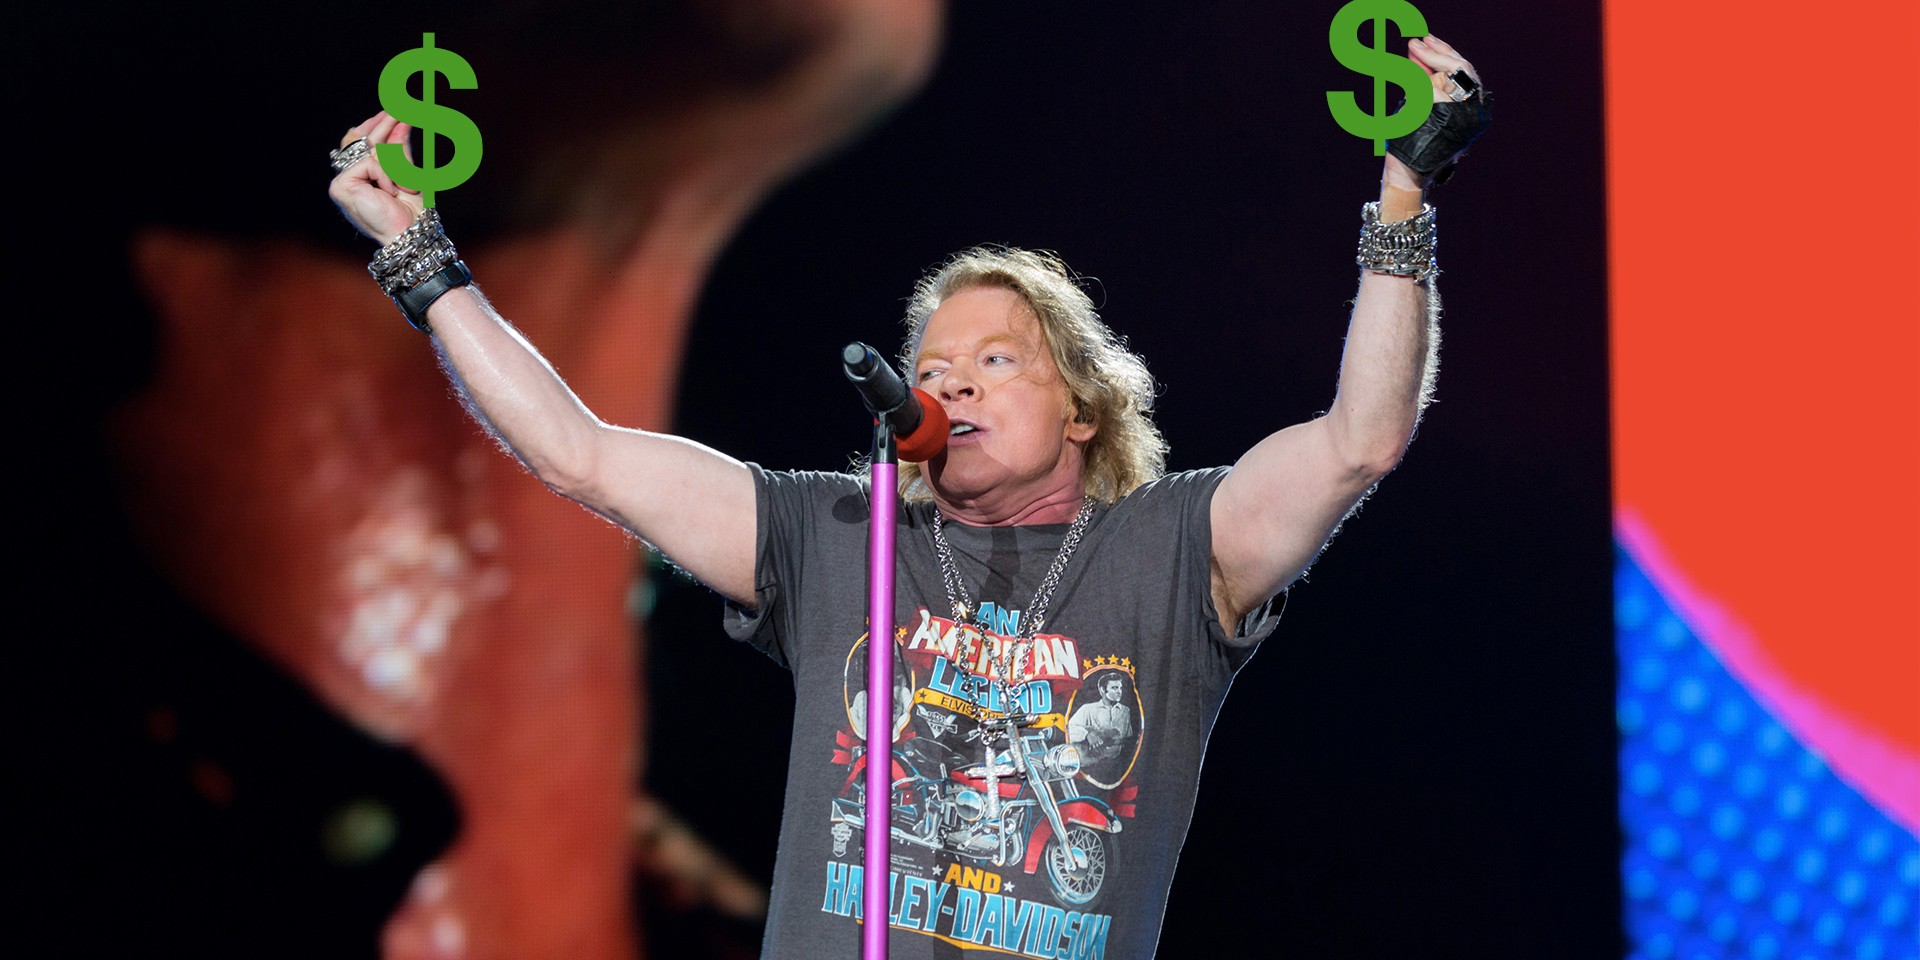 Guns N' Roses RFID refunds now available for collection